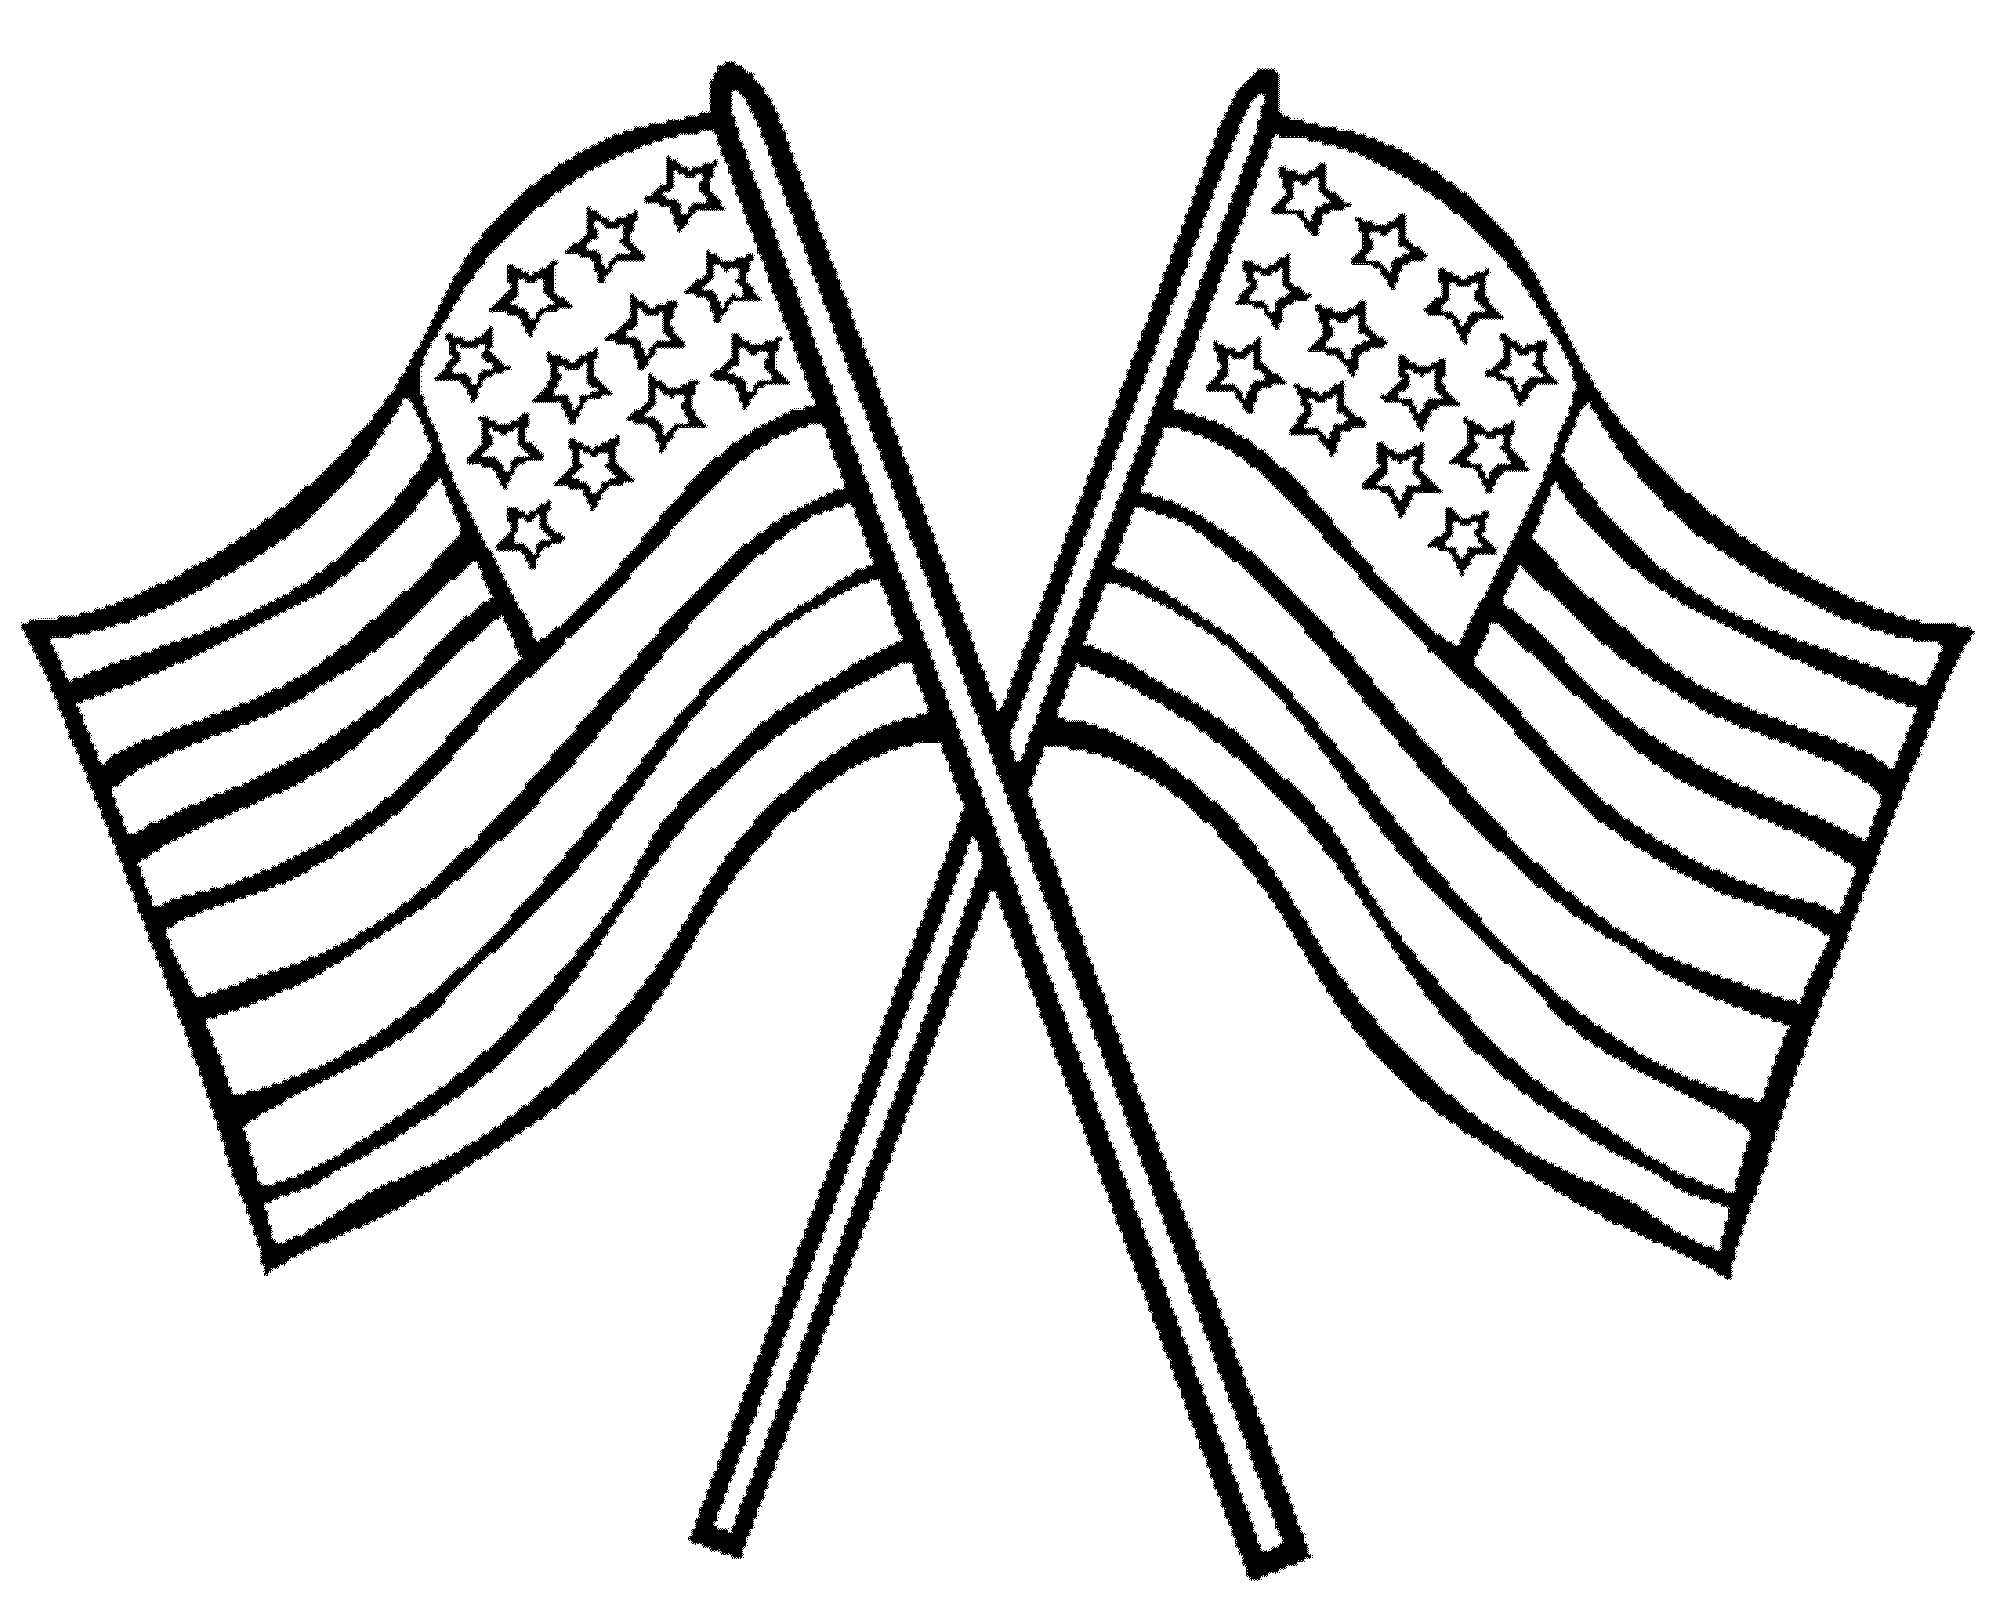 american flag coloring american flag coloring pages best coloring pages for kids flag coloring american